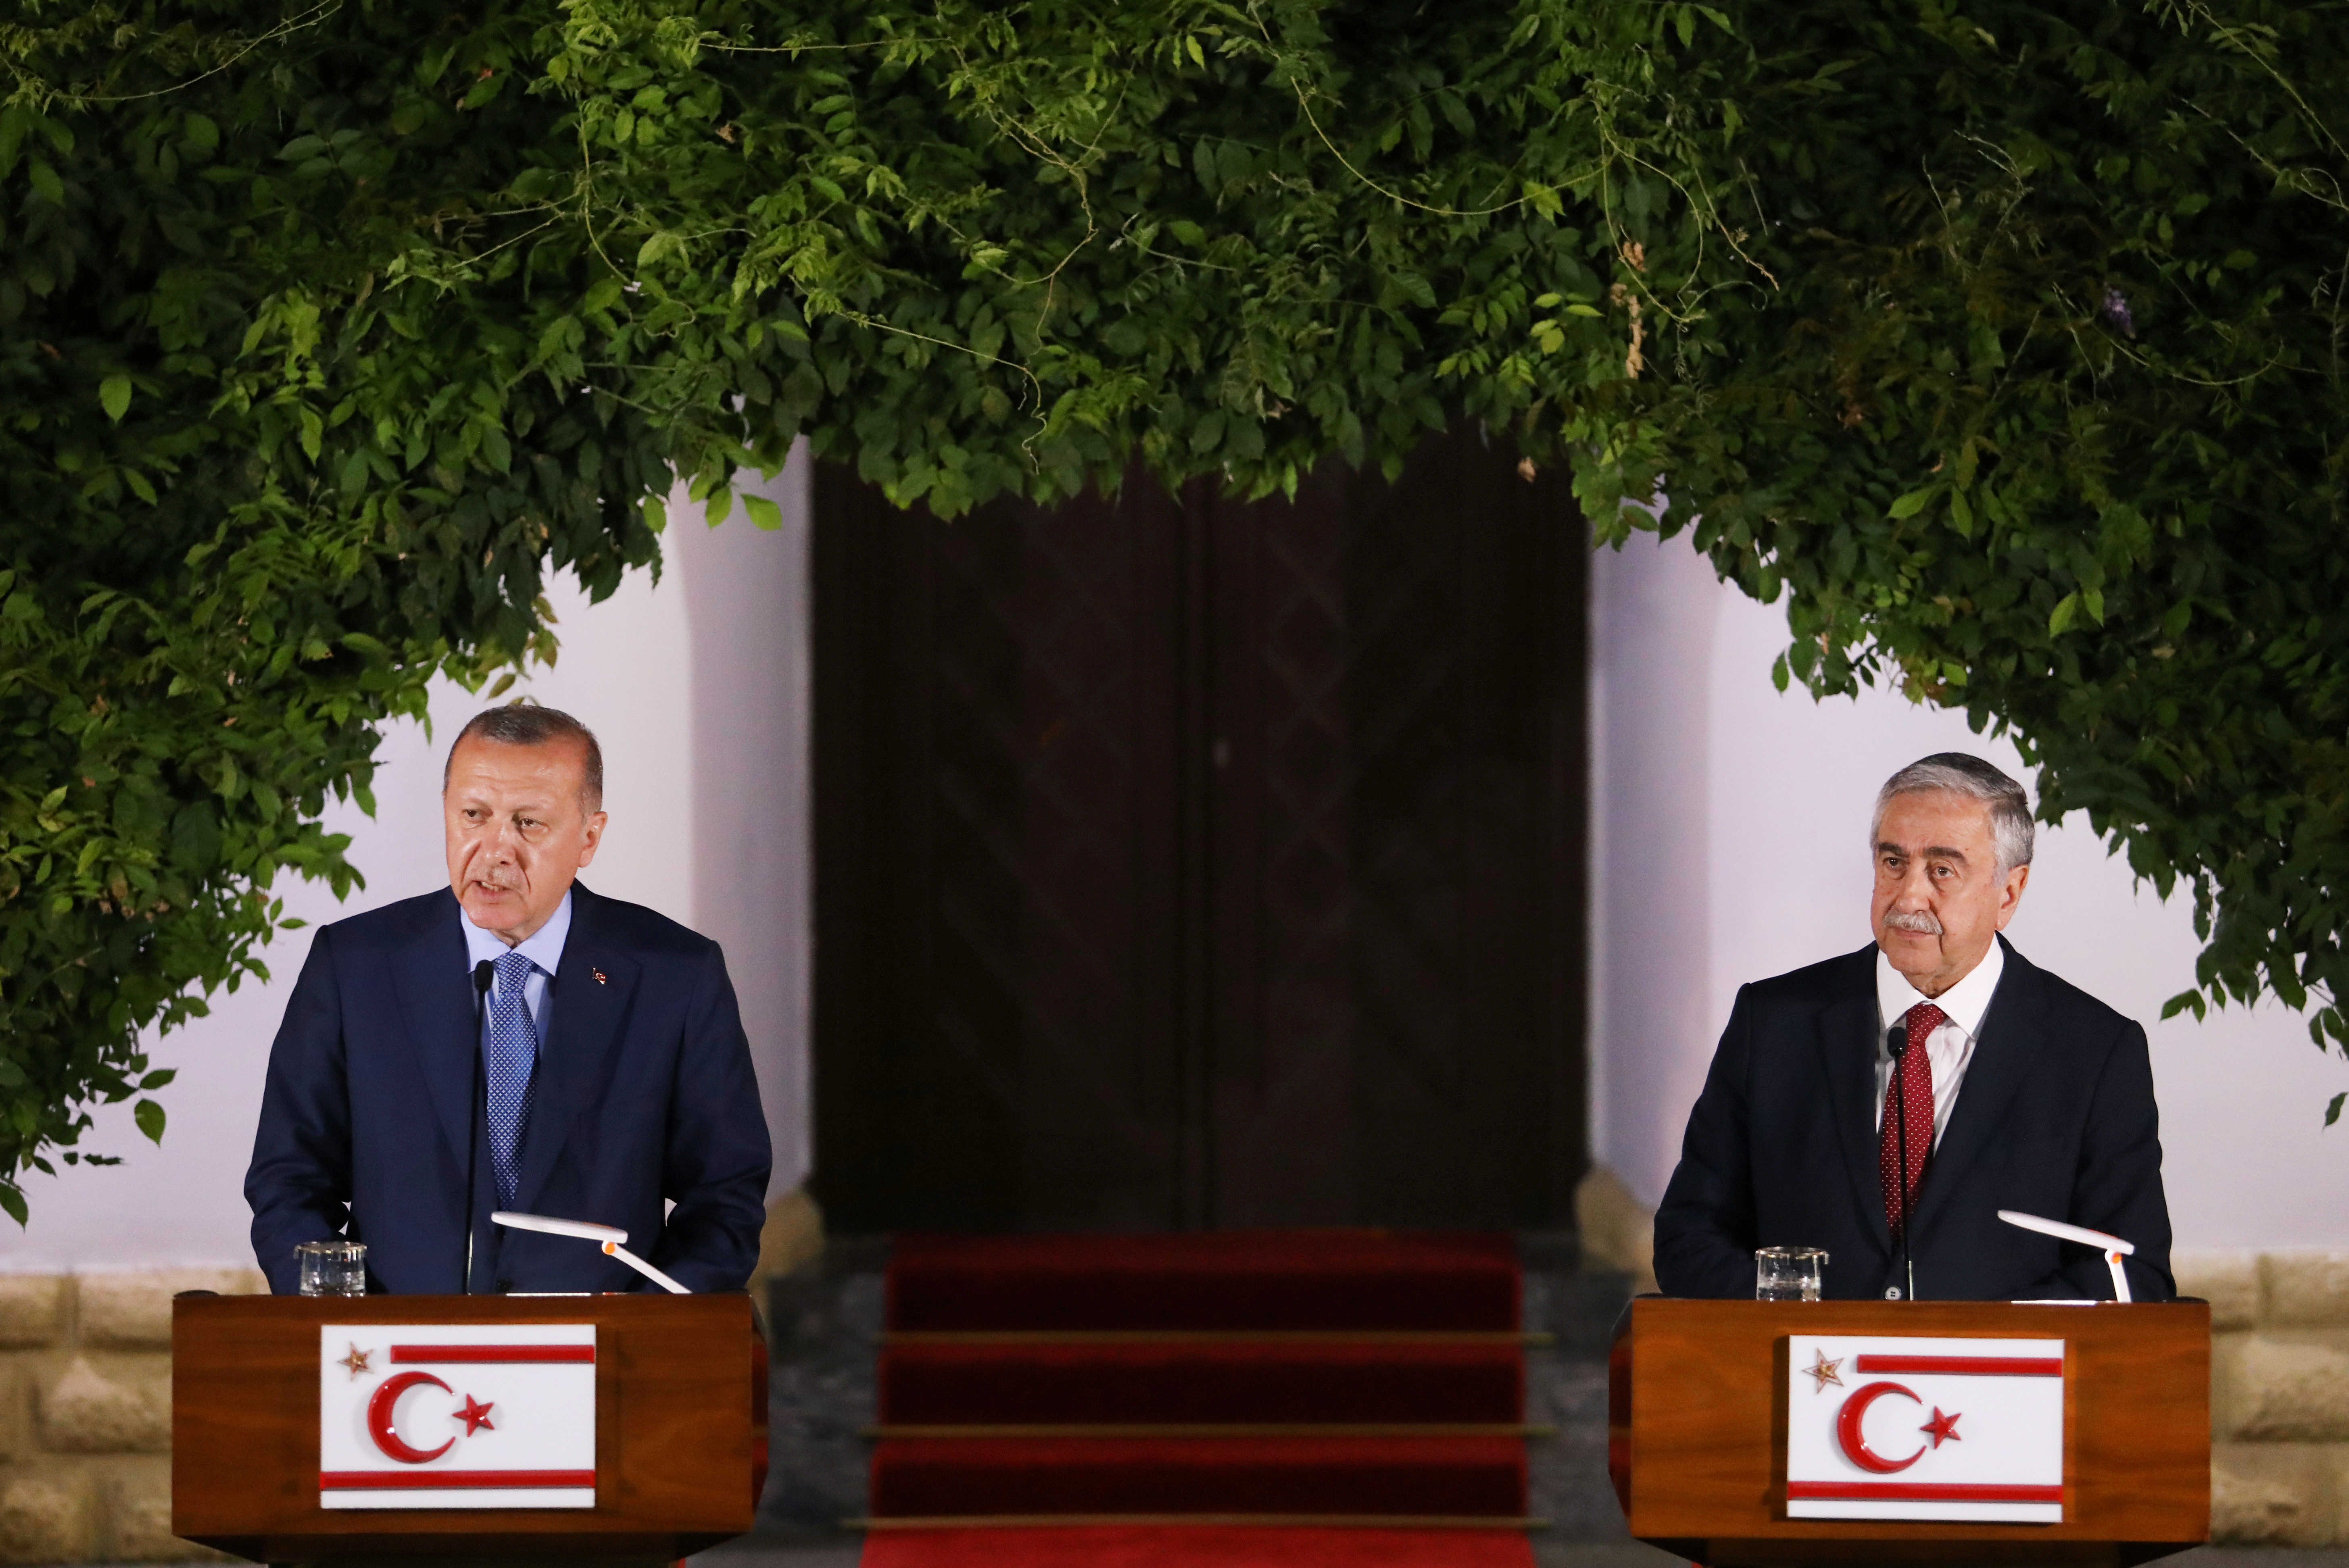 FILE - Turkish President Tayyip Erdogan, left, and Turkish Cypriot leader Mustafa Akinci talk at a news conference during a visit in the Turkish Cypriot northern part of the divided city of Nicosia, Cyprus, July 10,2018.